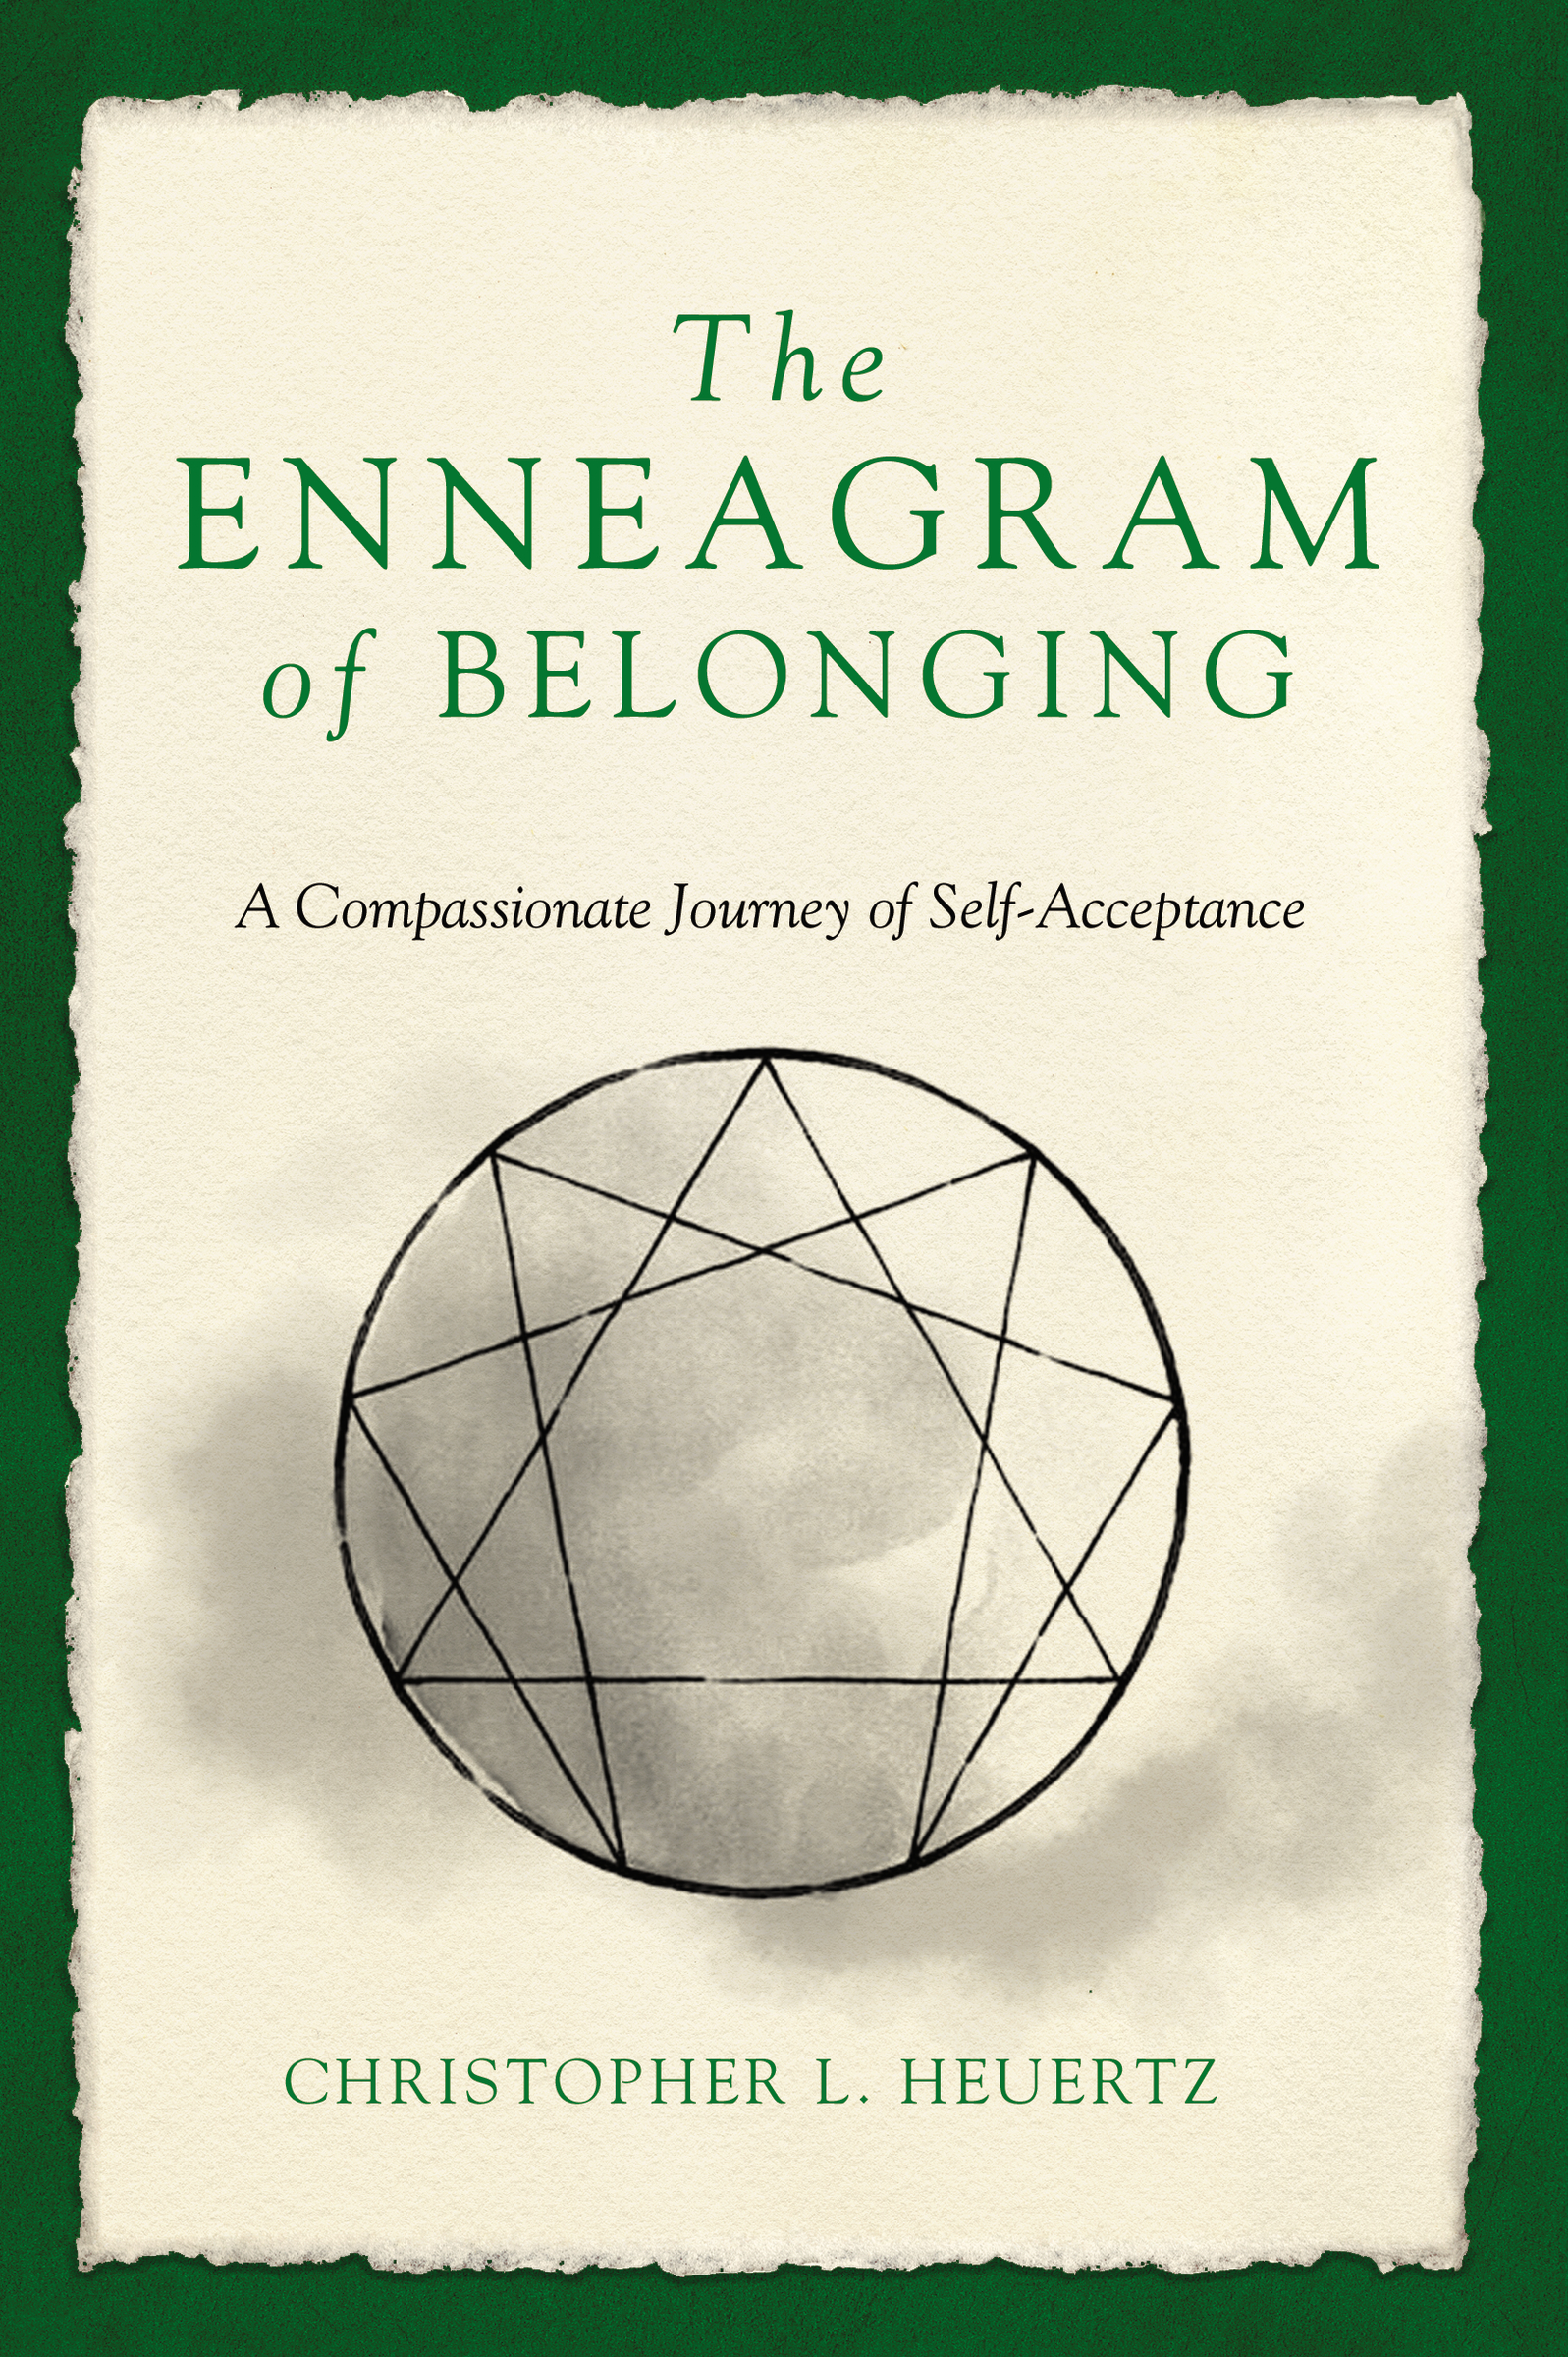 The Enneagram of Belonging A Compassionate Journey of Self-Acceptance